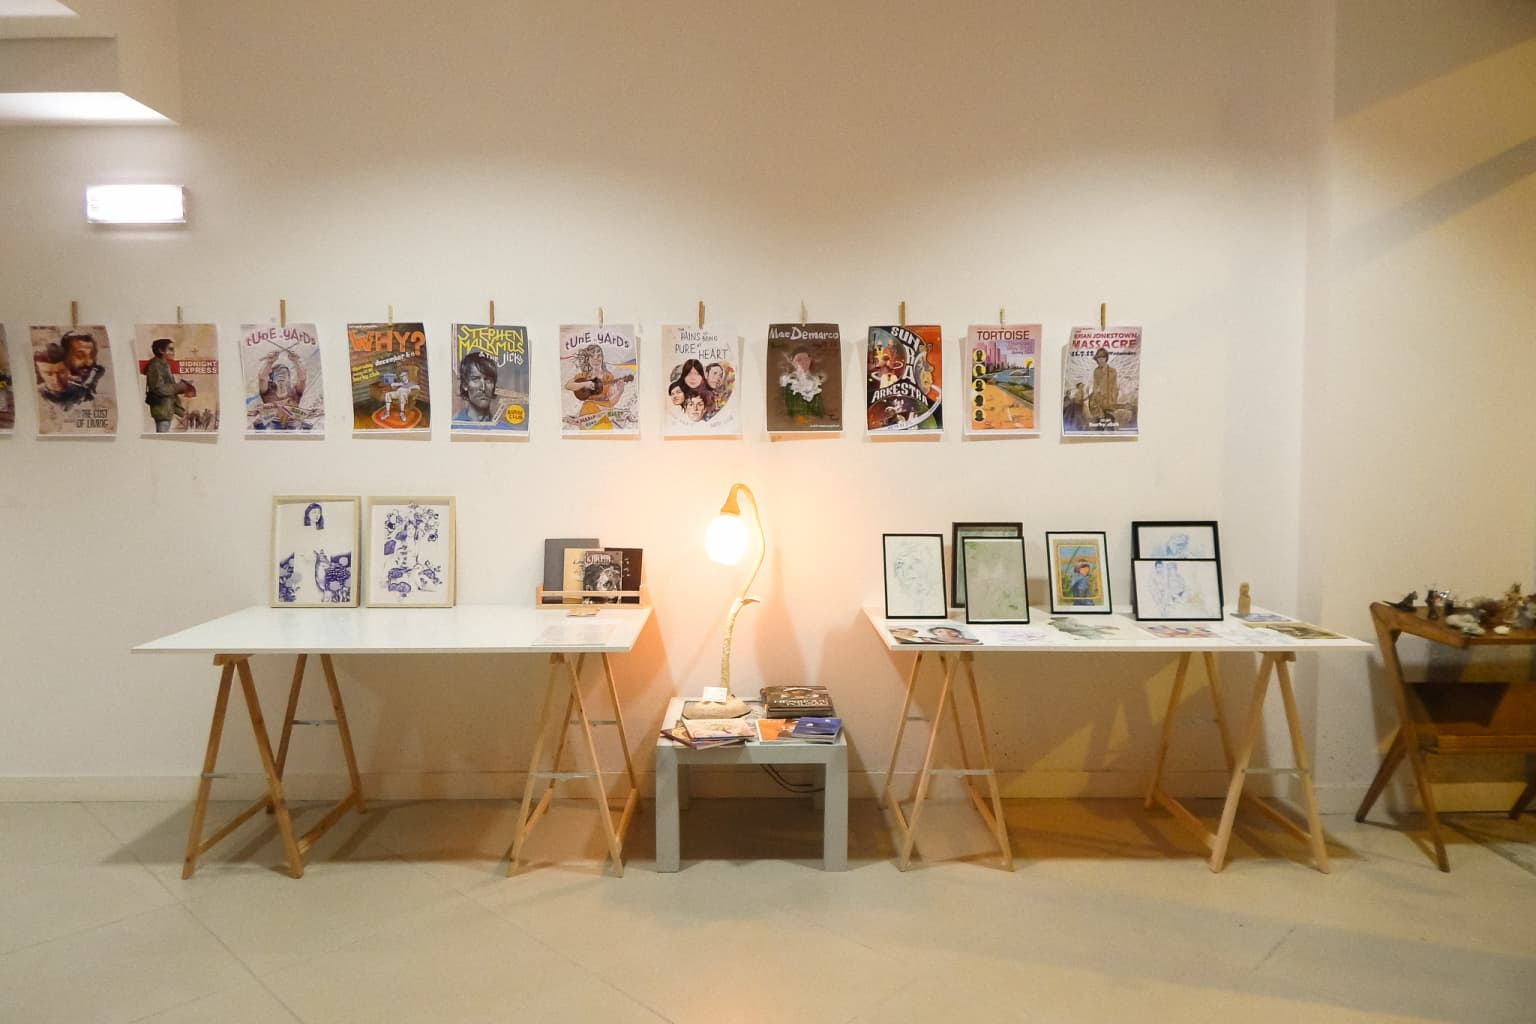 Collective exhibition of illustration